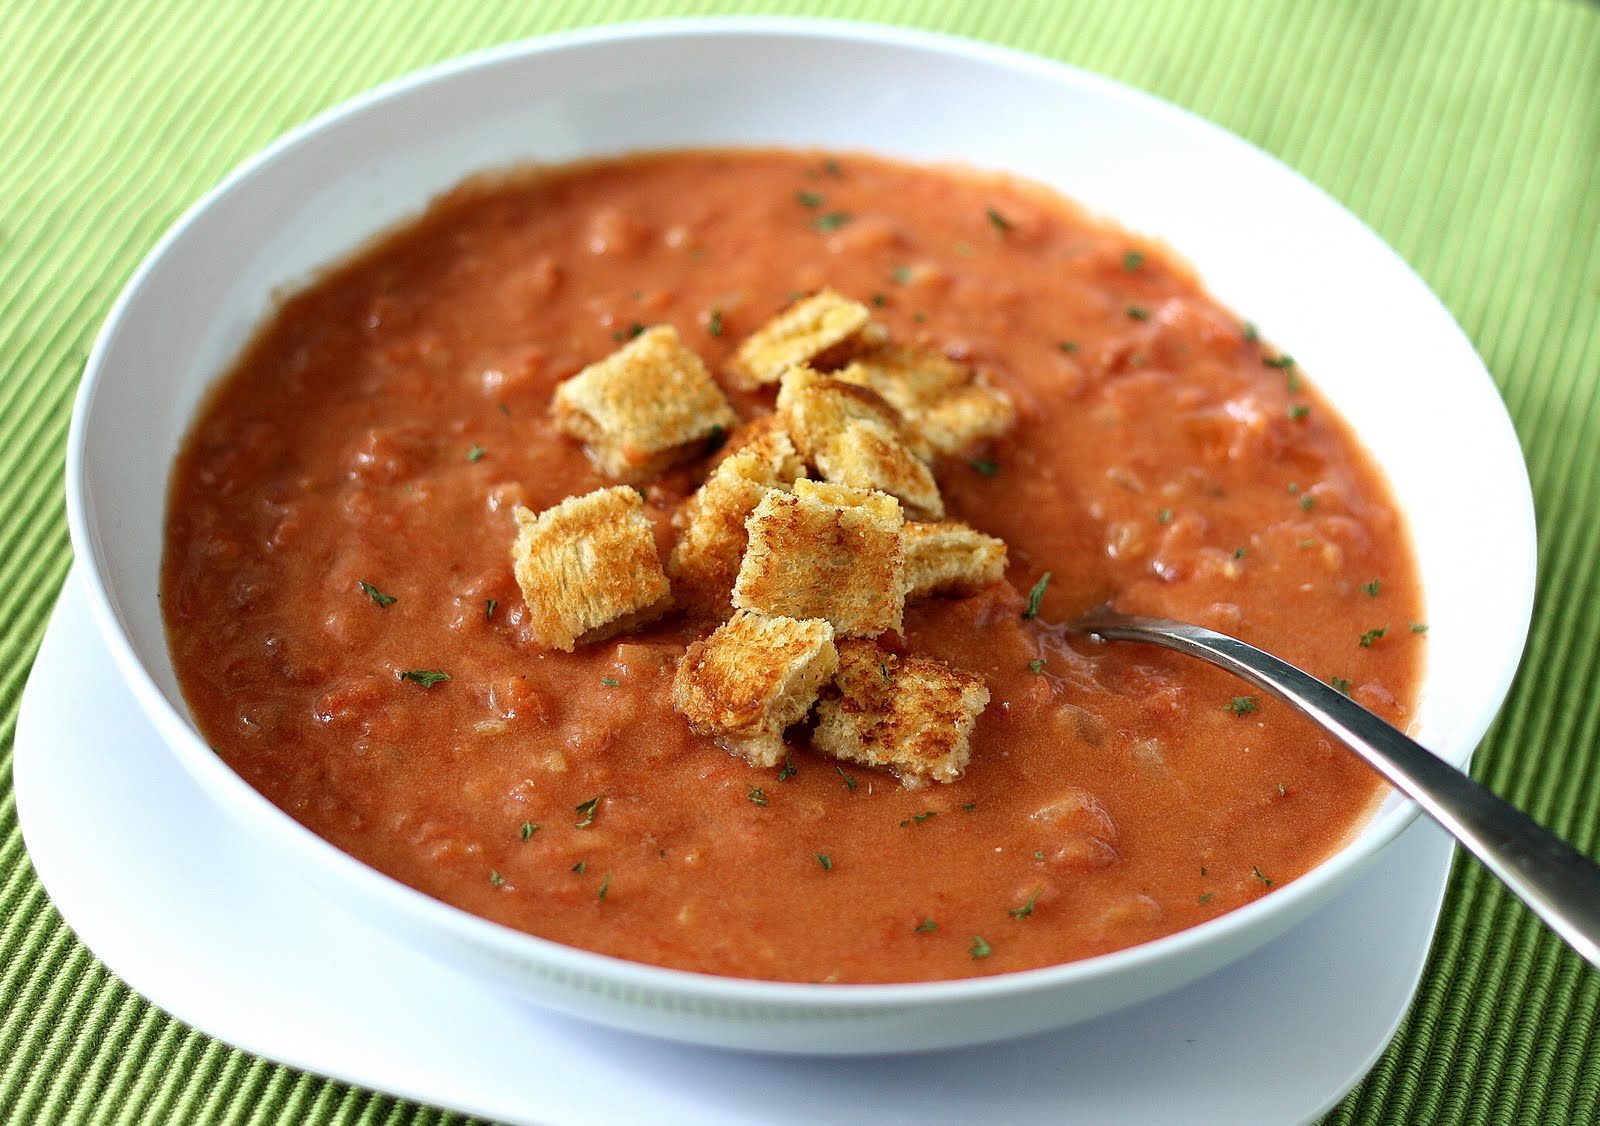 Mangio da Sola: Cream of Tomato Soup